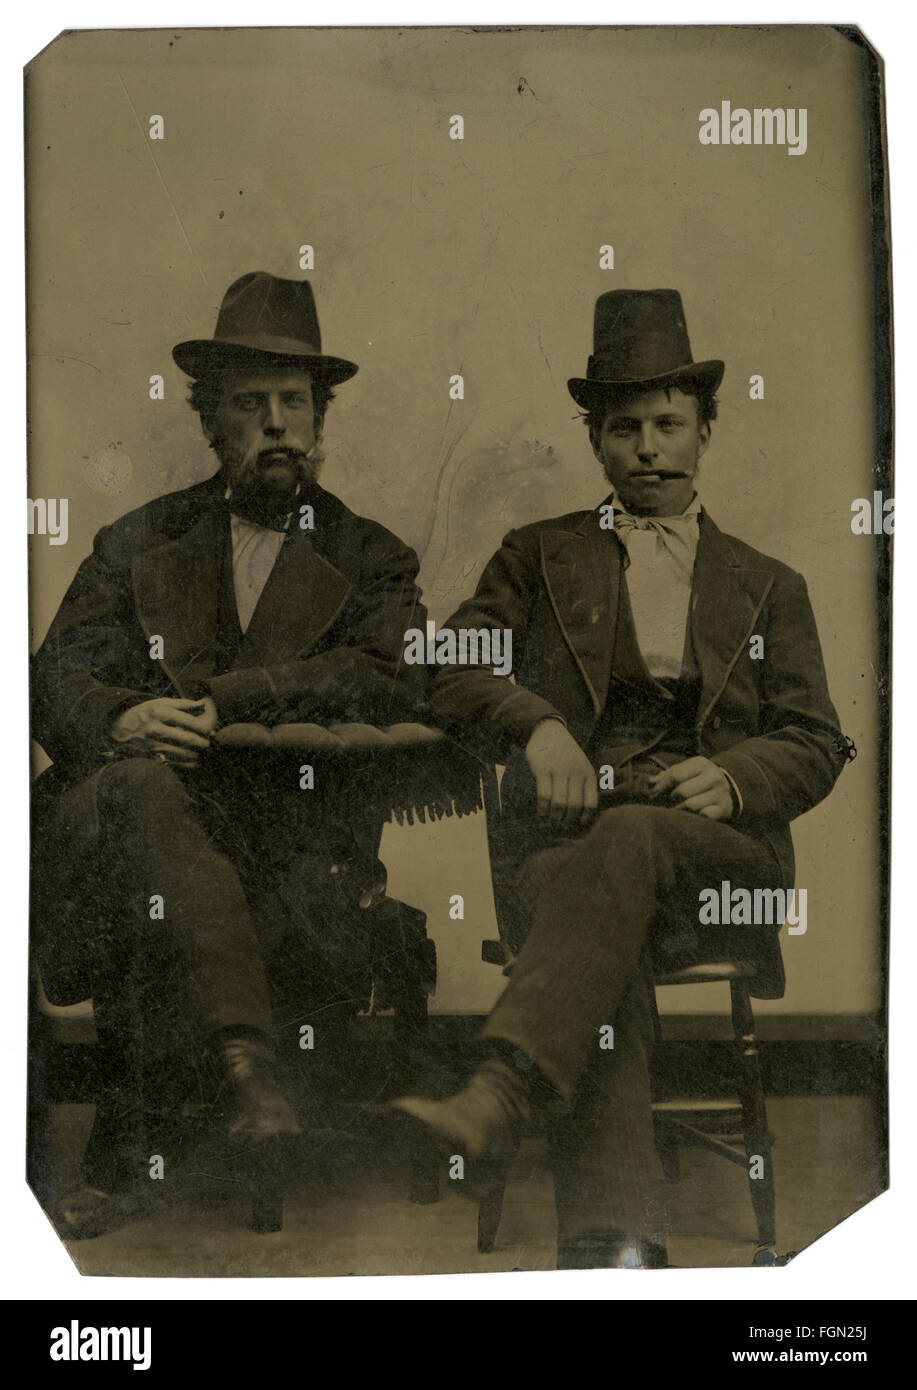 Circa 1860 tintype photograph, two gentlemen, possibly father and son, with cigars. SOURCE: ORIGINAL TINTYPE IMAGE. - Stock Image